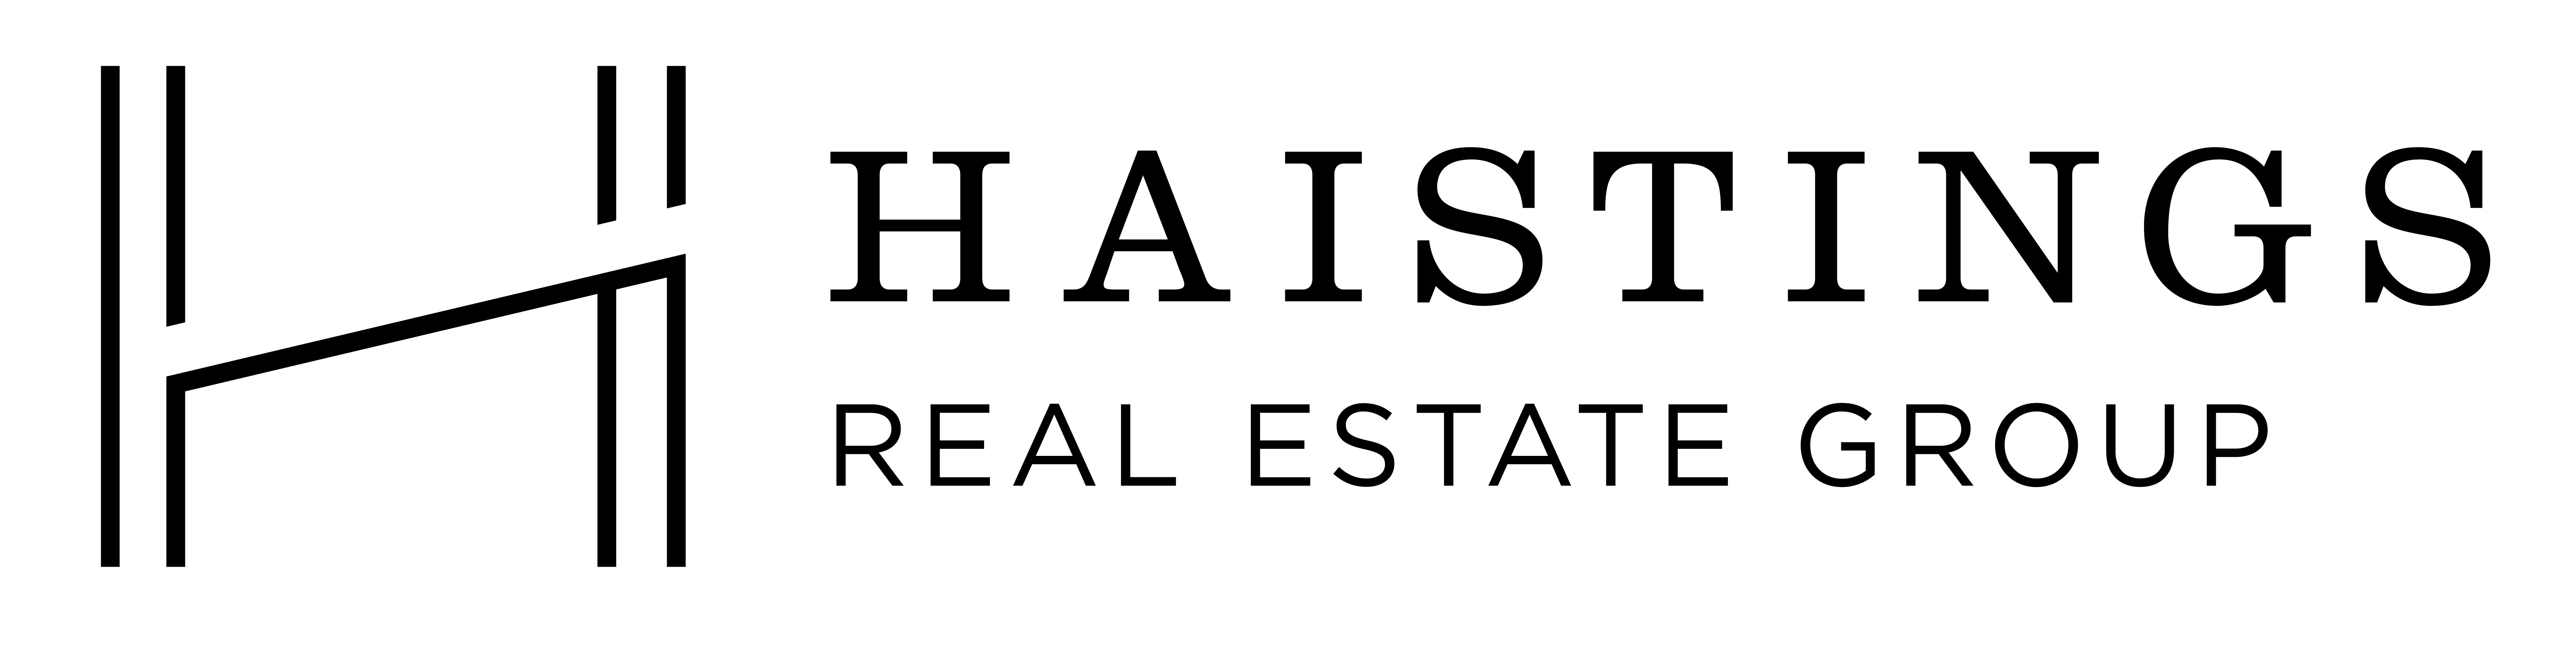 Haistings Real Estate Group | Compass logo